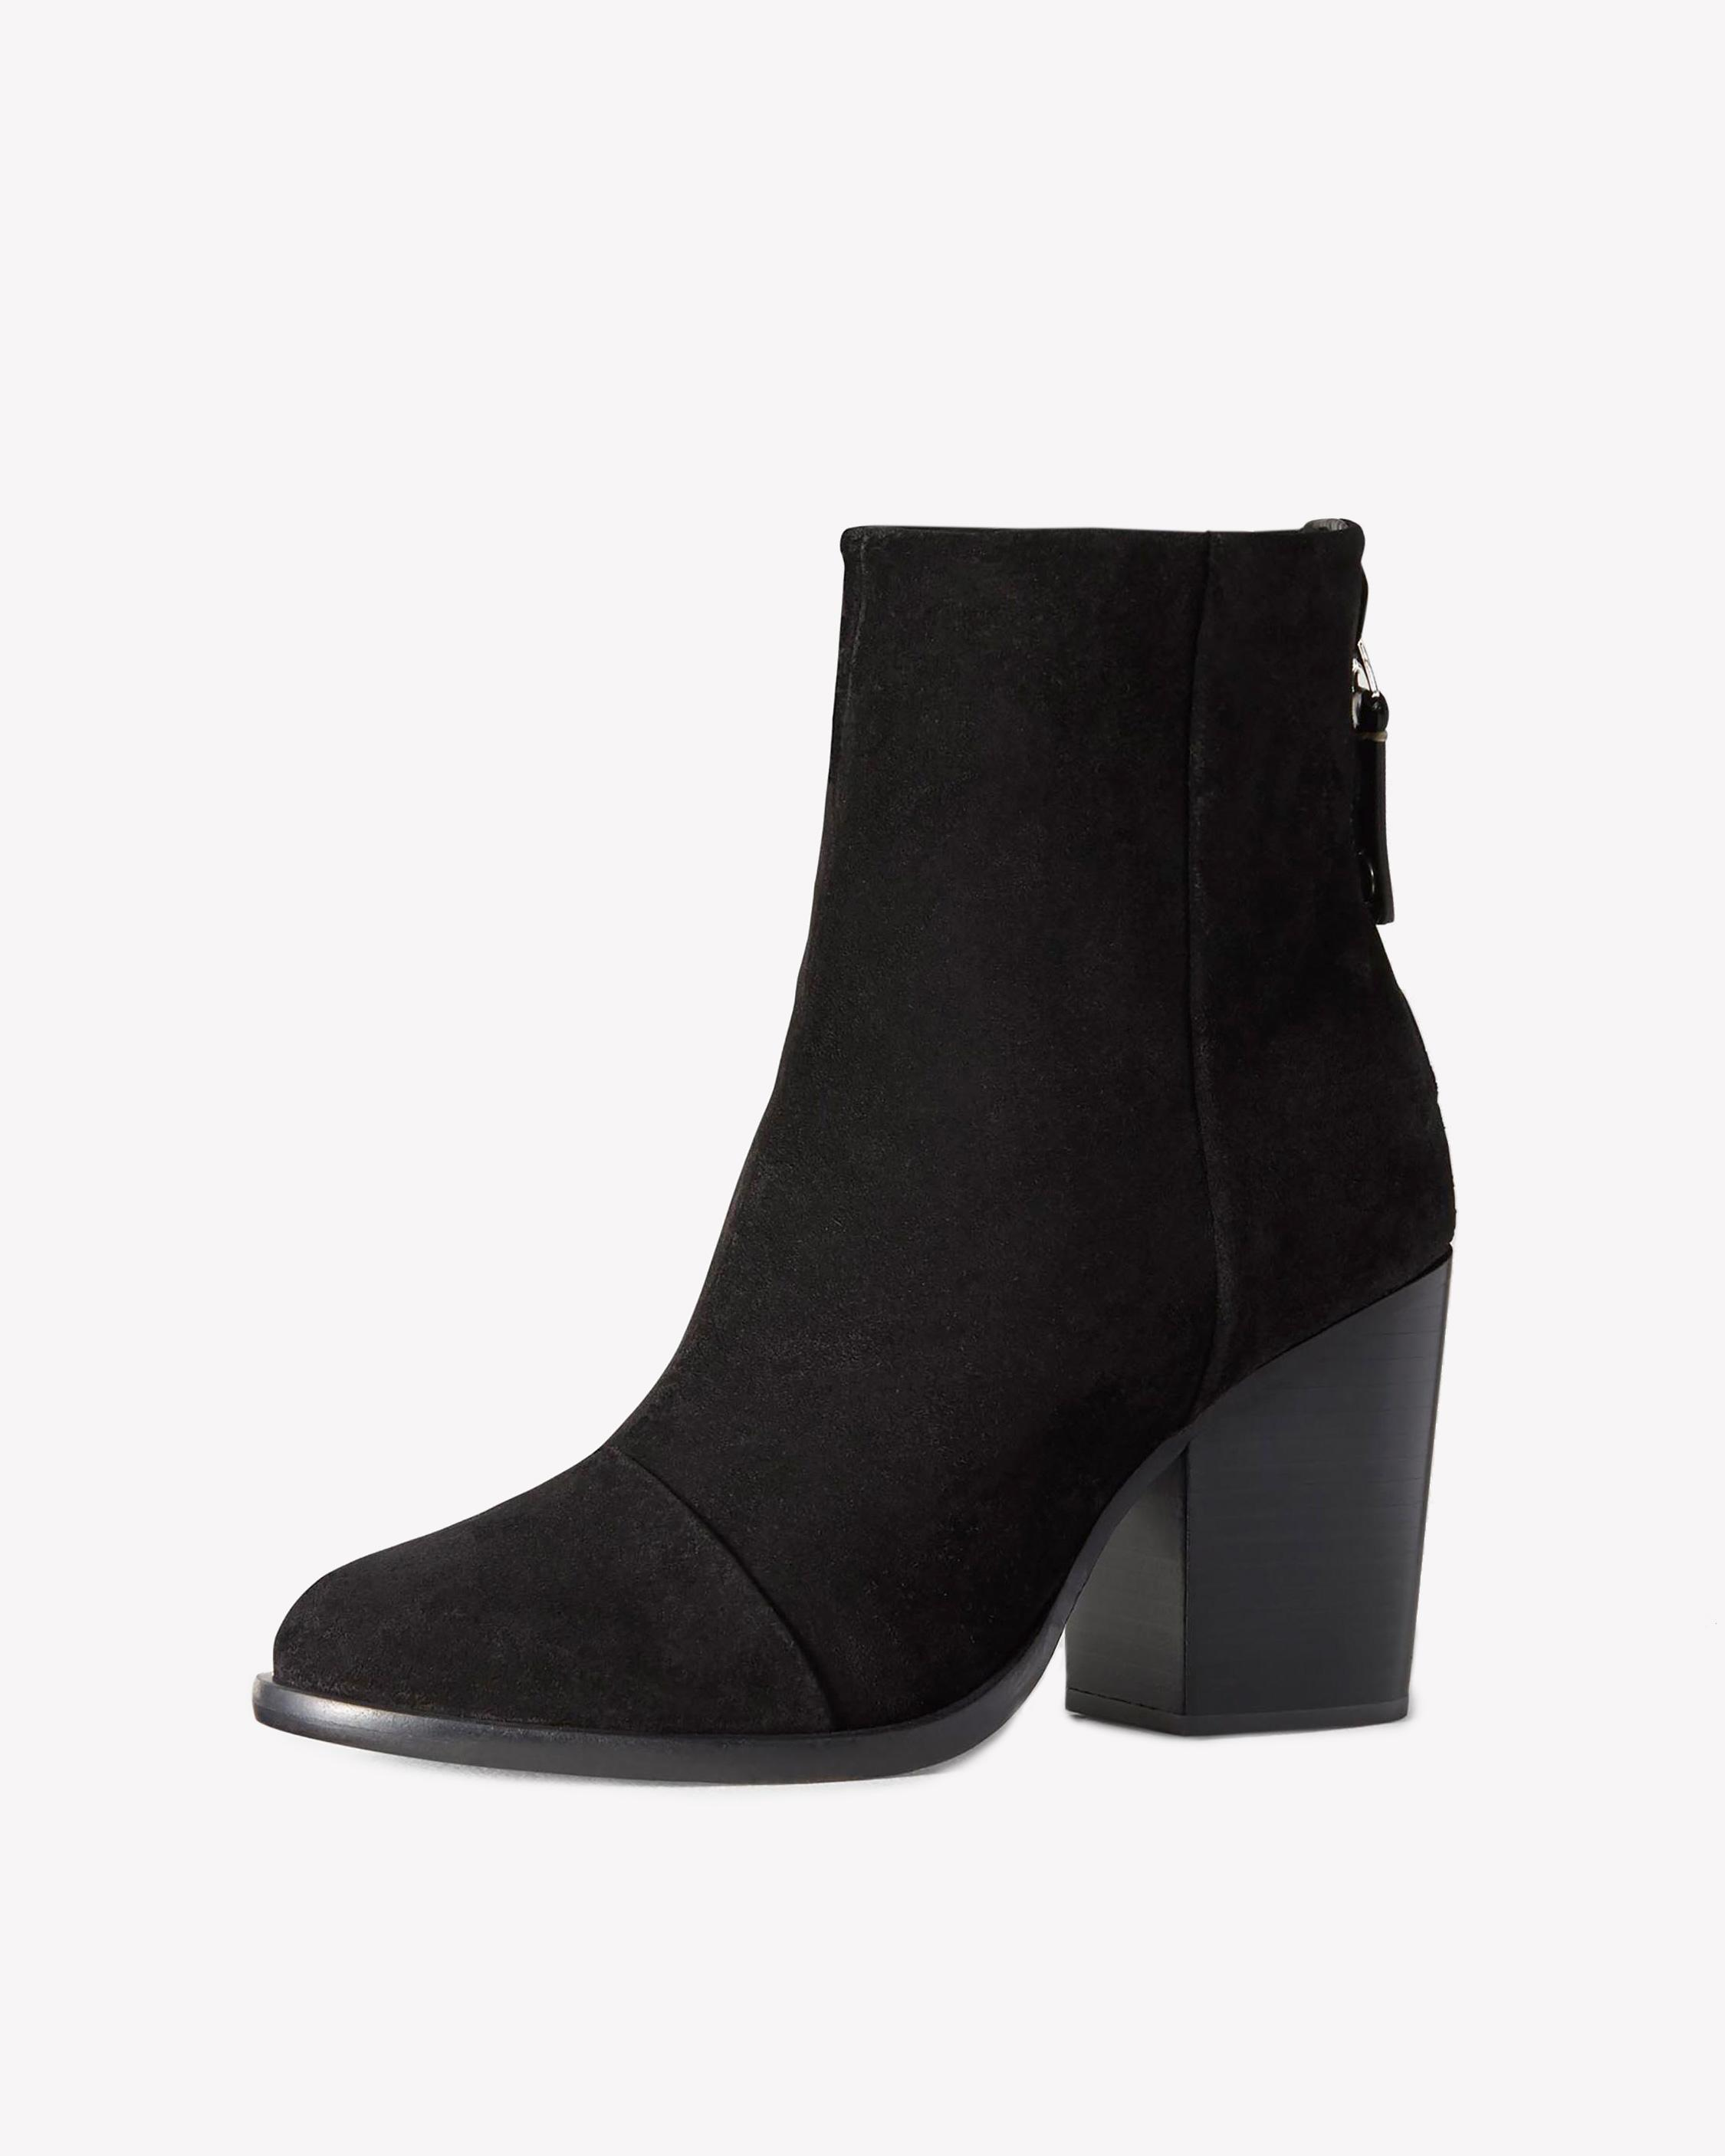 Ashby Ankle Boot - BLACK SUEDE | rag & bone